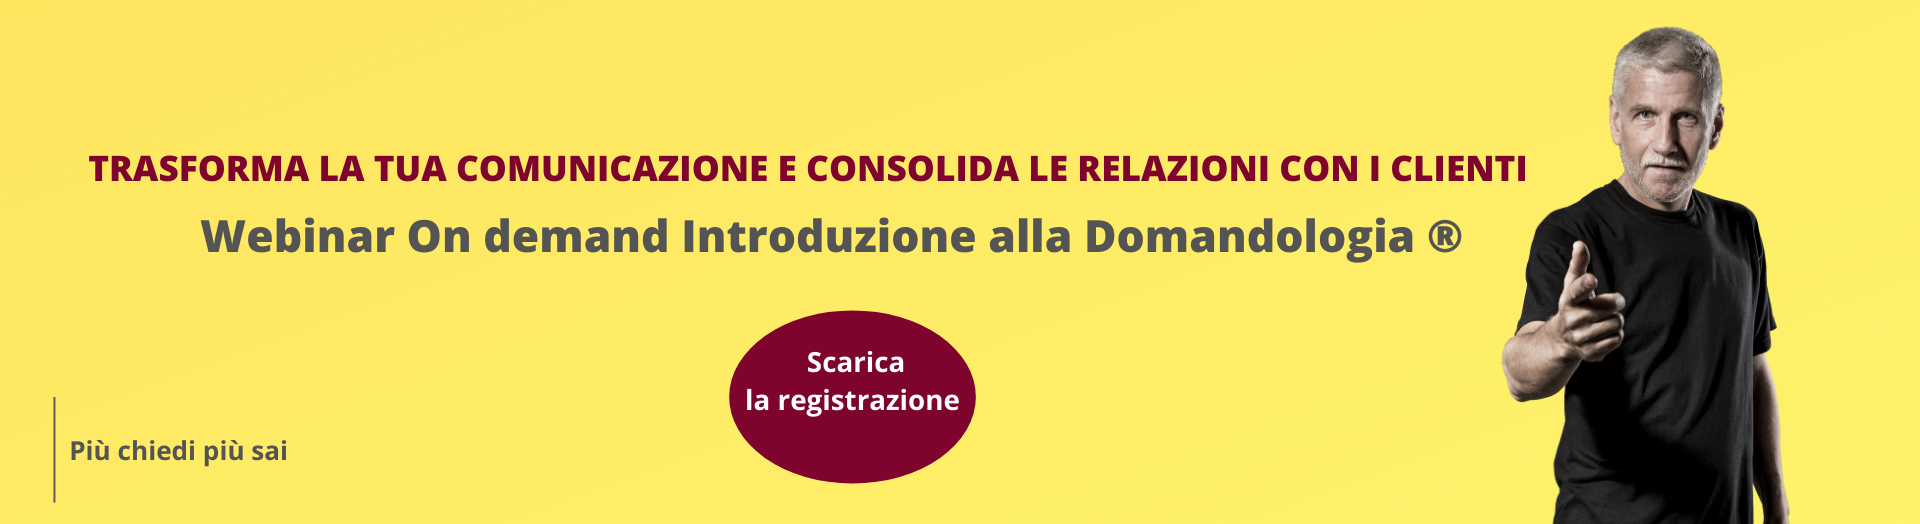 webinar-domandologia-on-demand